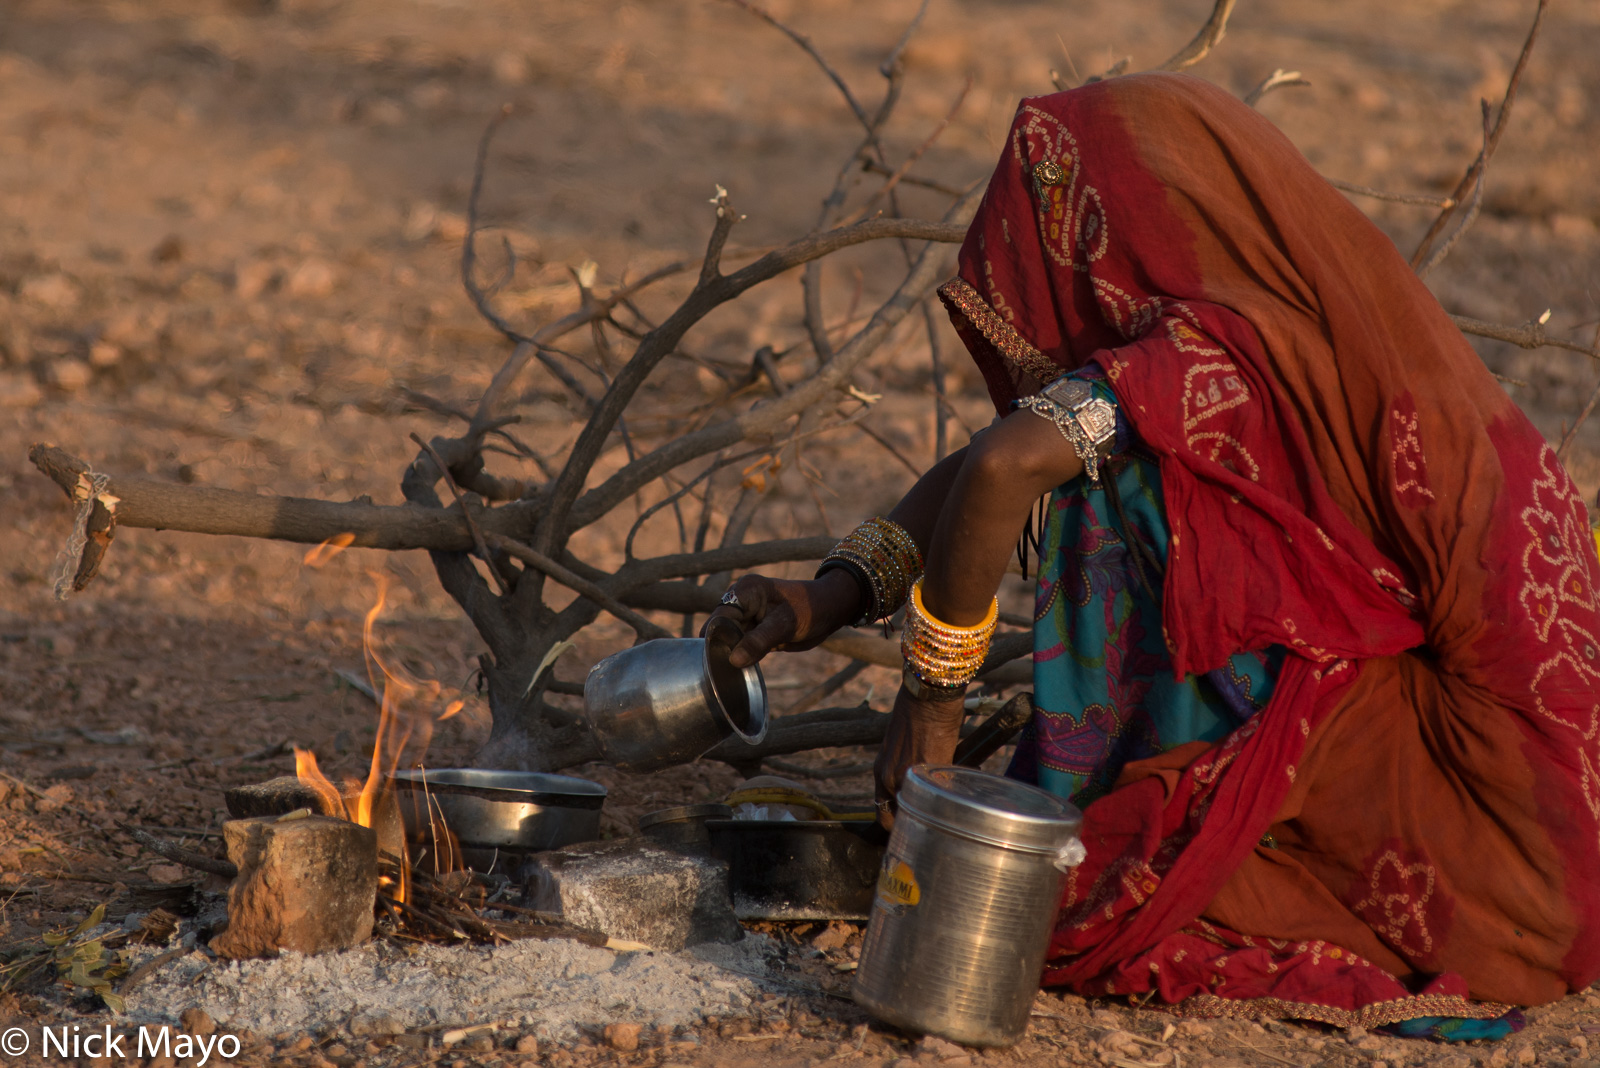 Cooking, Festival, India, Rajasthan, photo